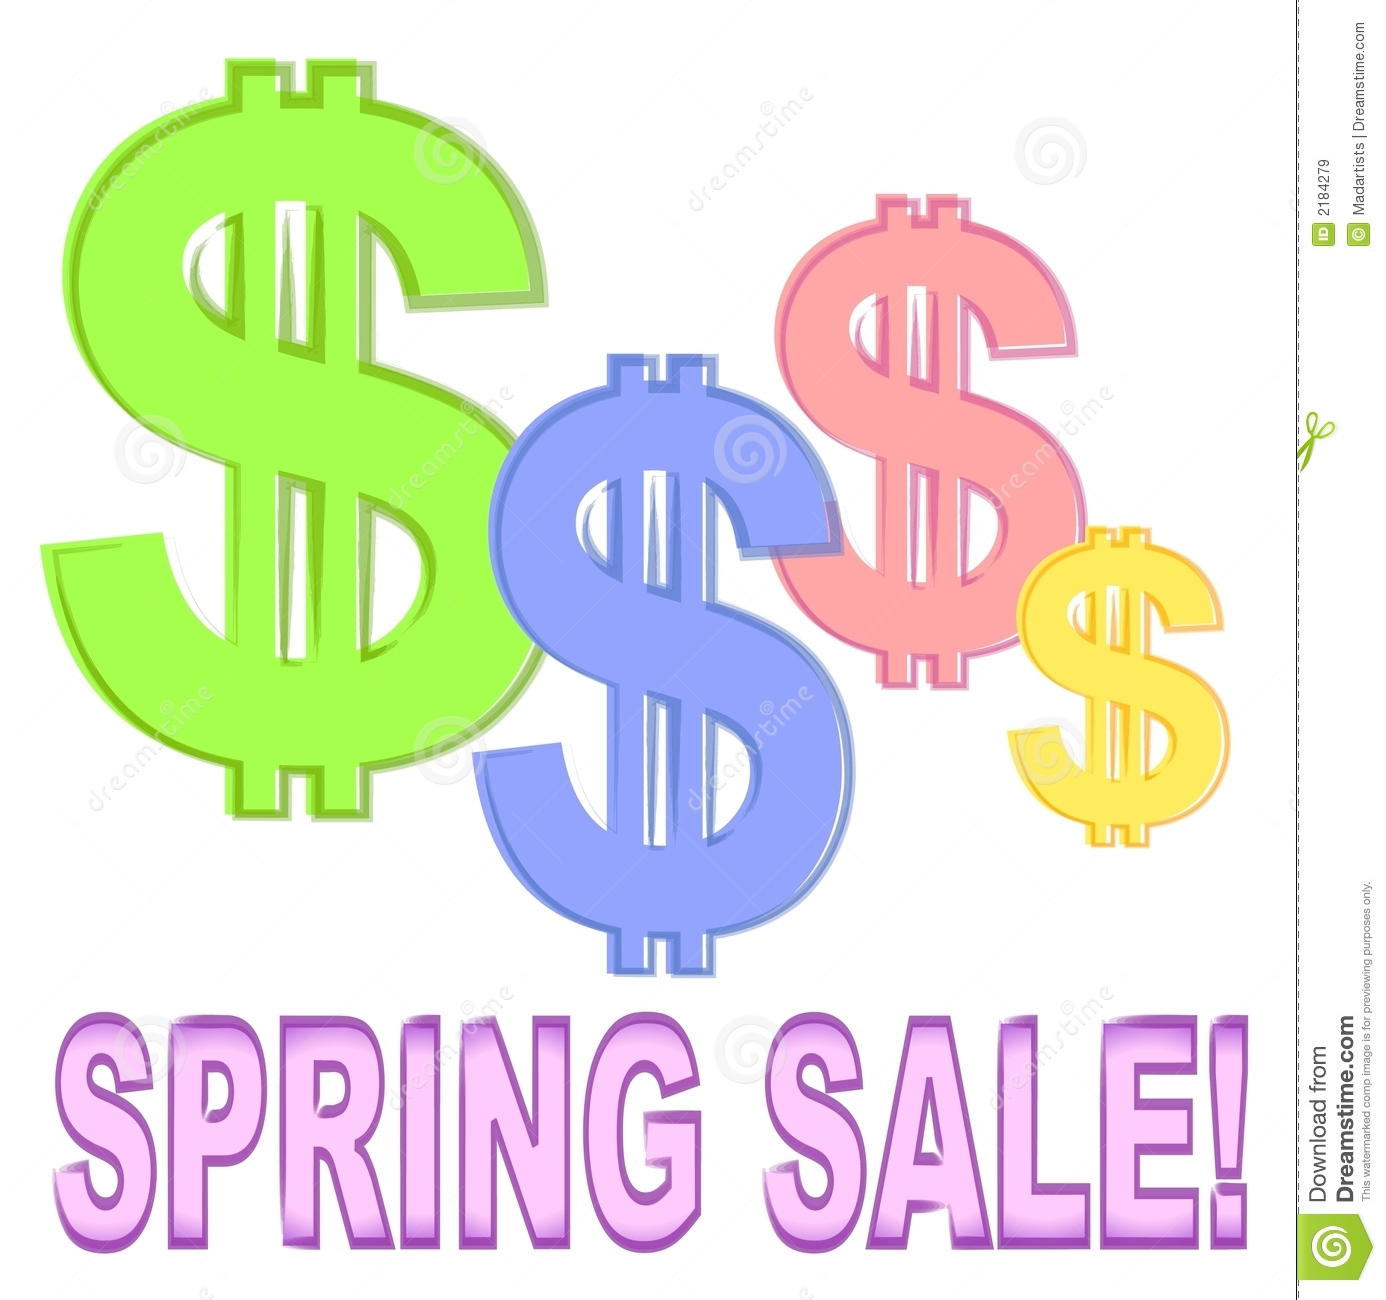 Spring Sale: Spring Sale With Dollar Signs Stock Vector